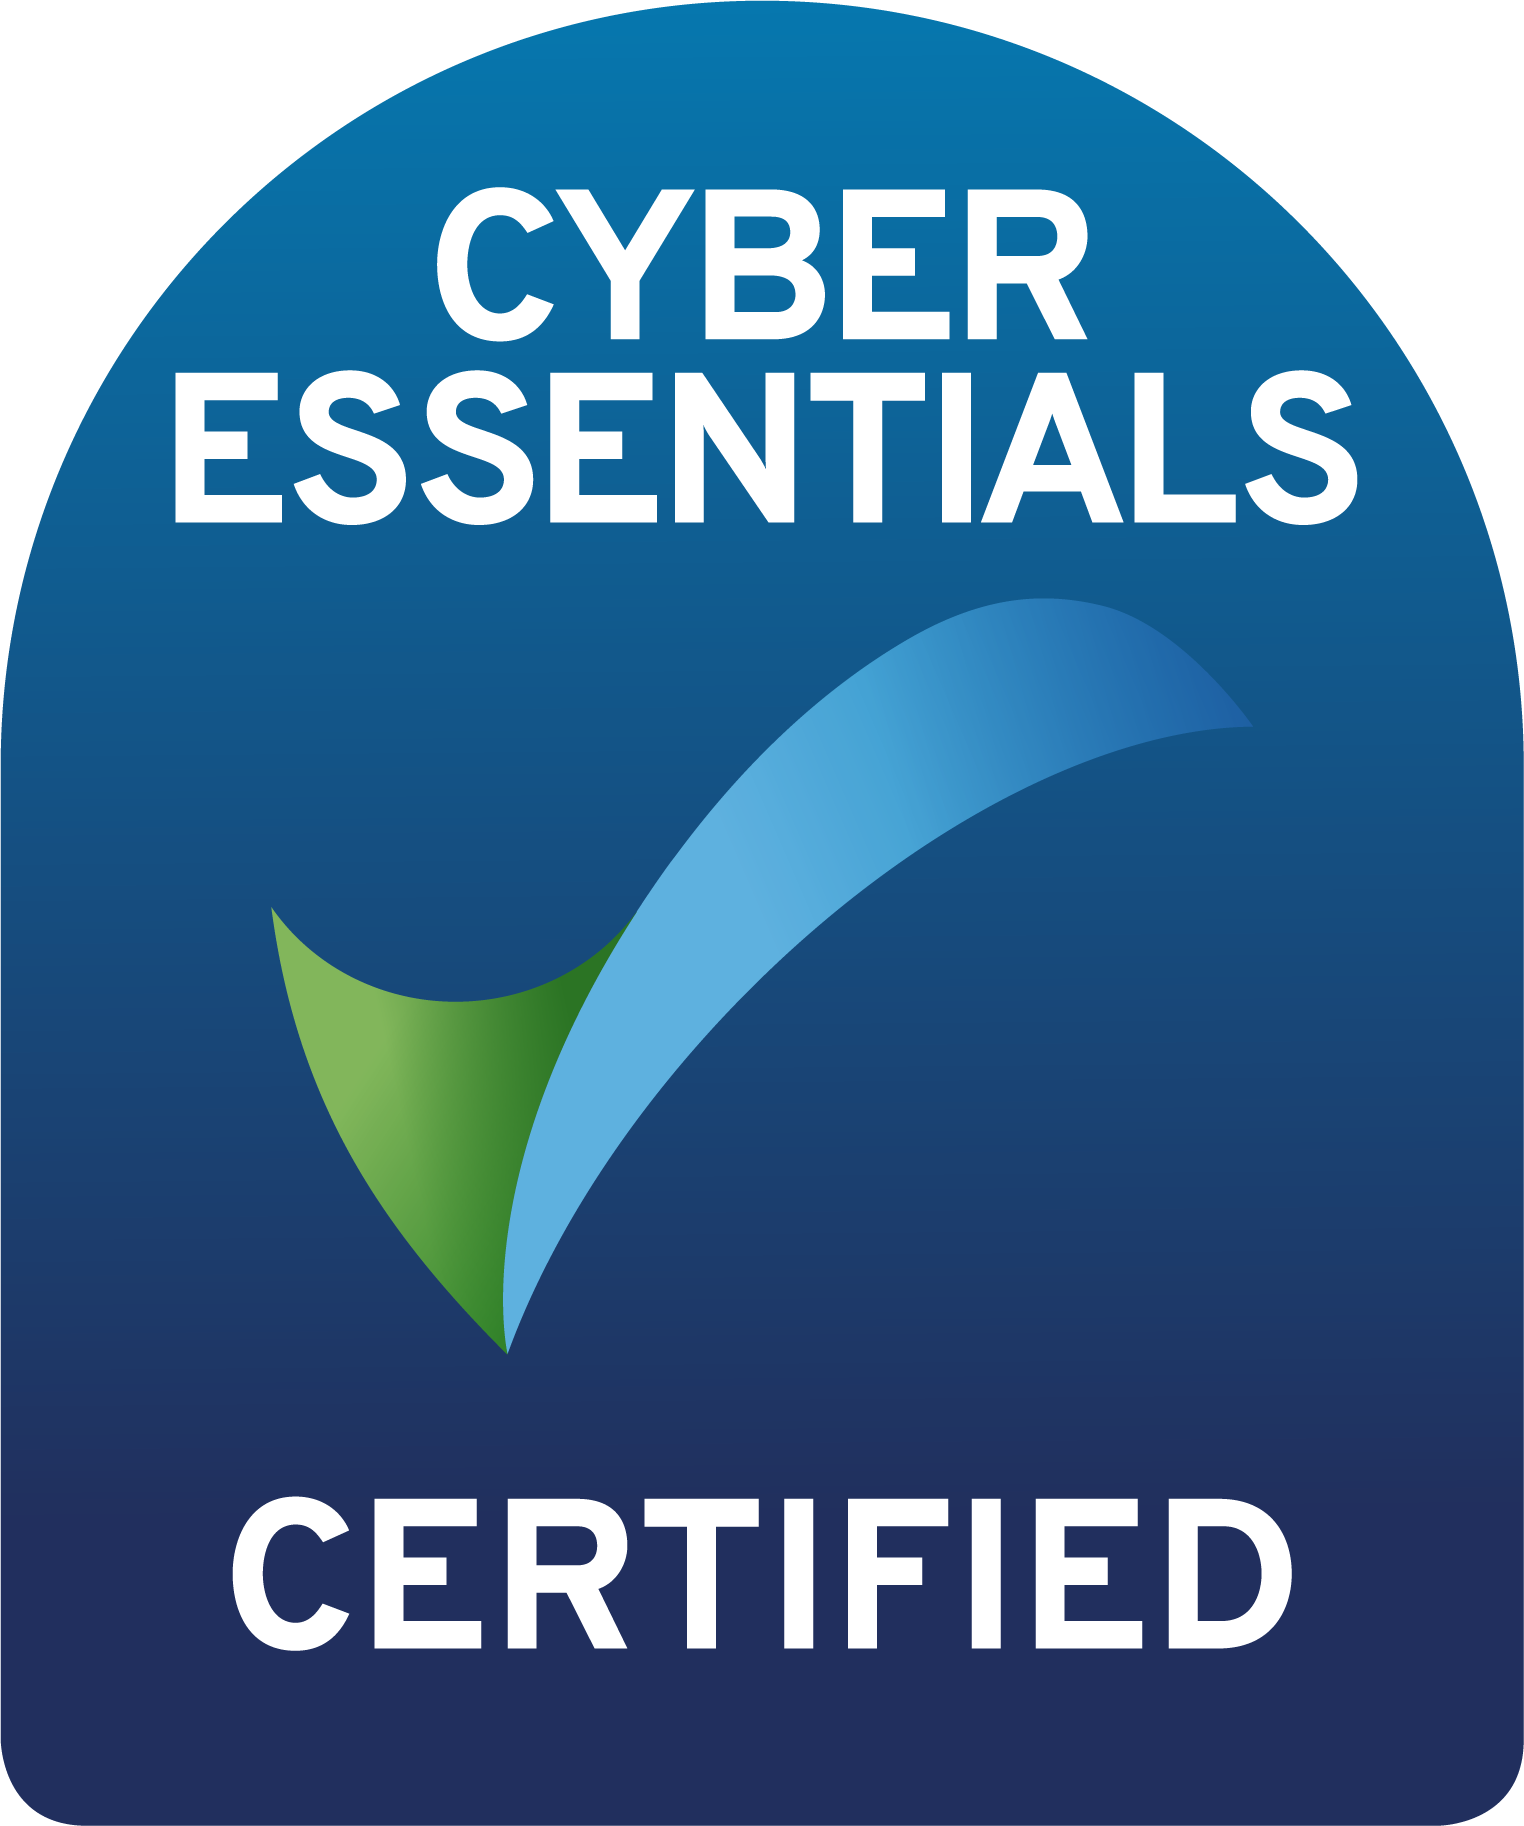 National Cyber Security Centre's Cyber Essentials certification